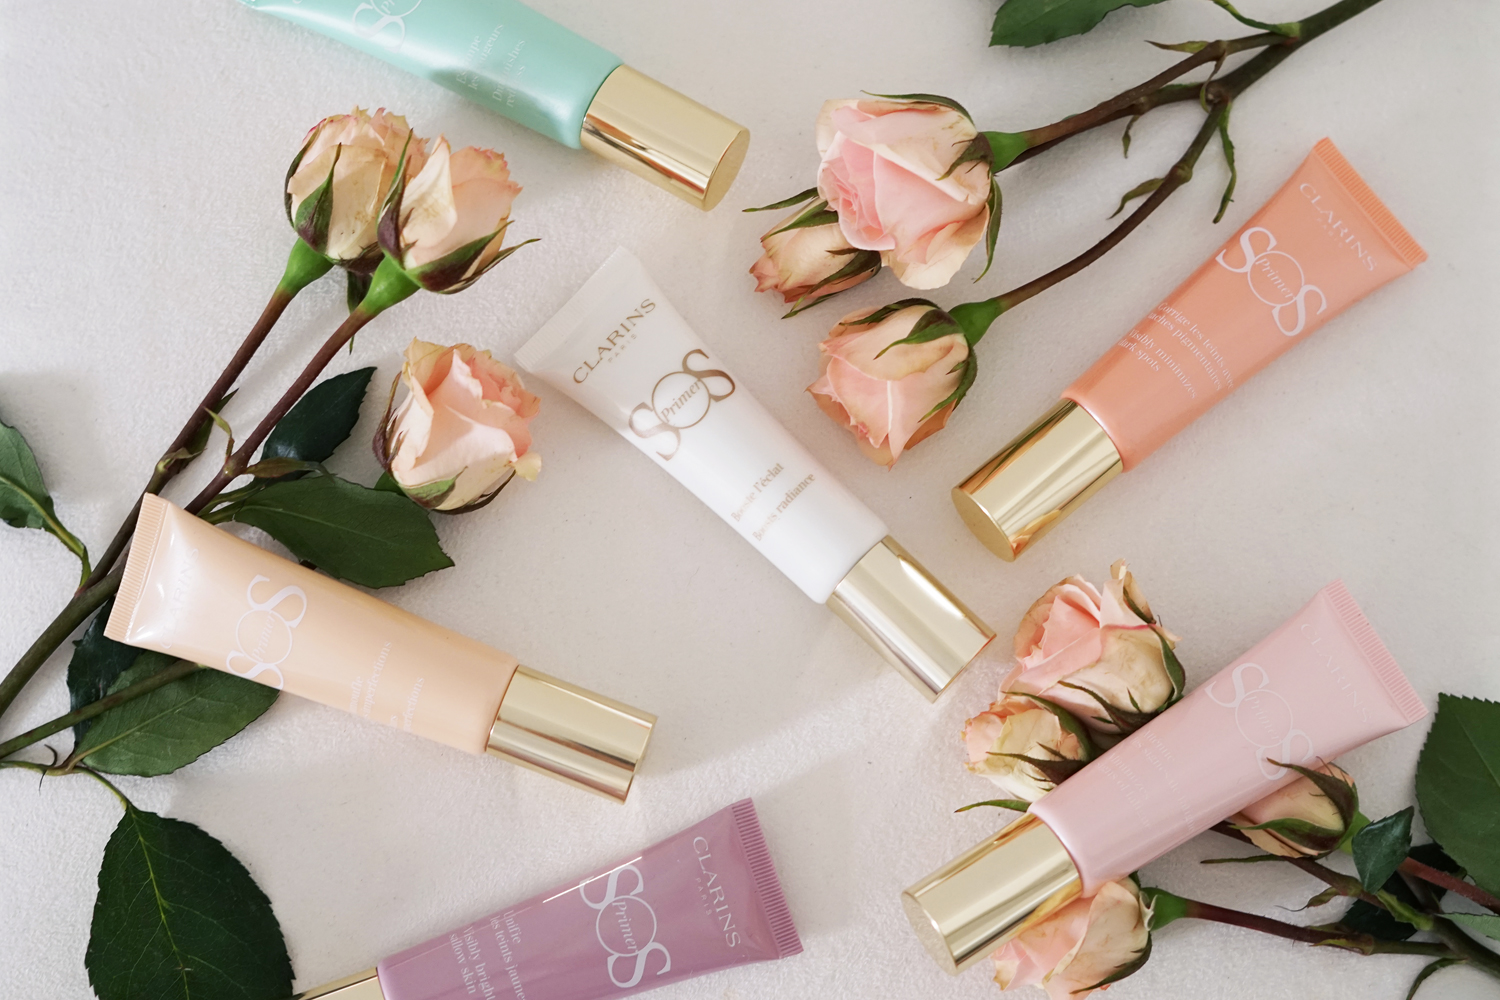 02clarins-sos-primers-spring-pastel-roses-beauty